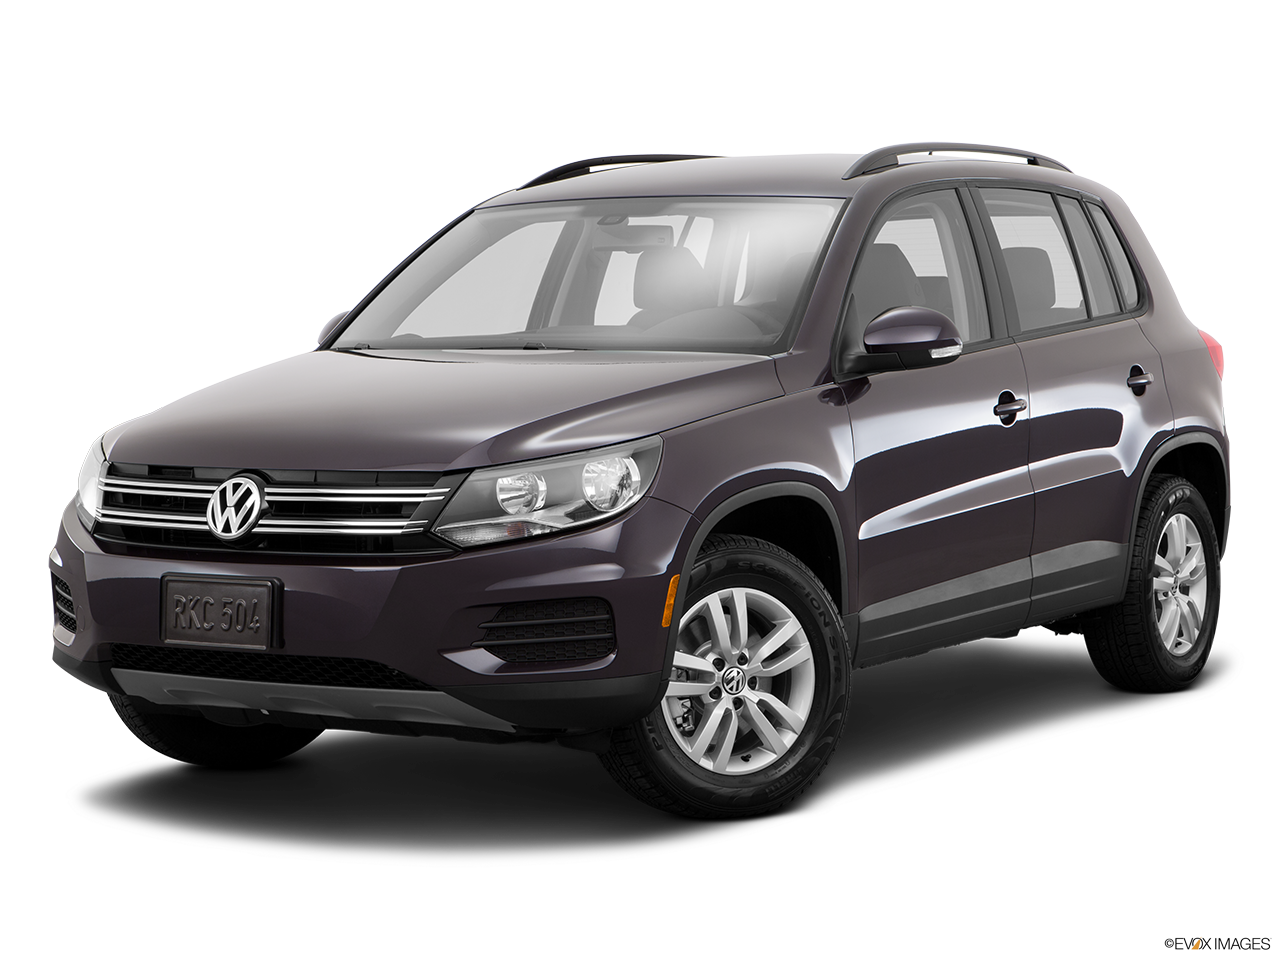 Test Drive A 2016 Volkswagen Tiguanat New Century Volkswagen in Los Angeles